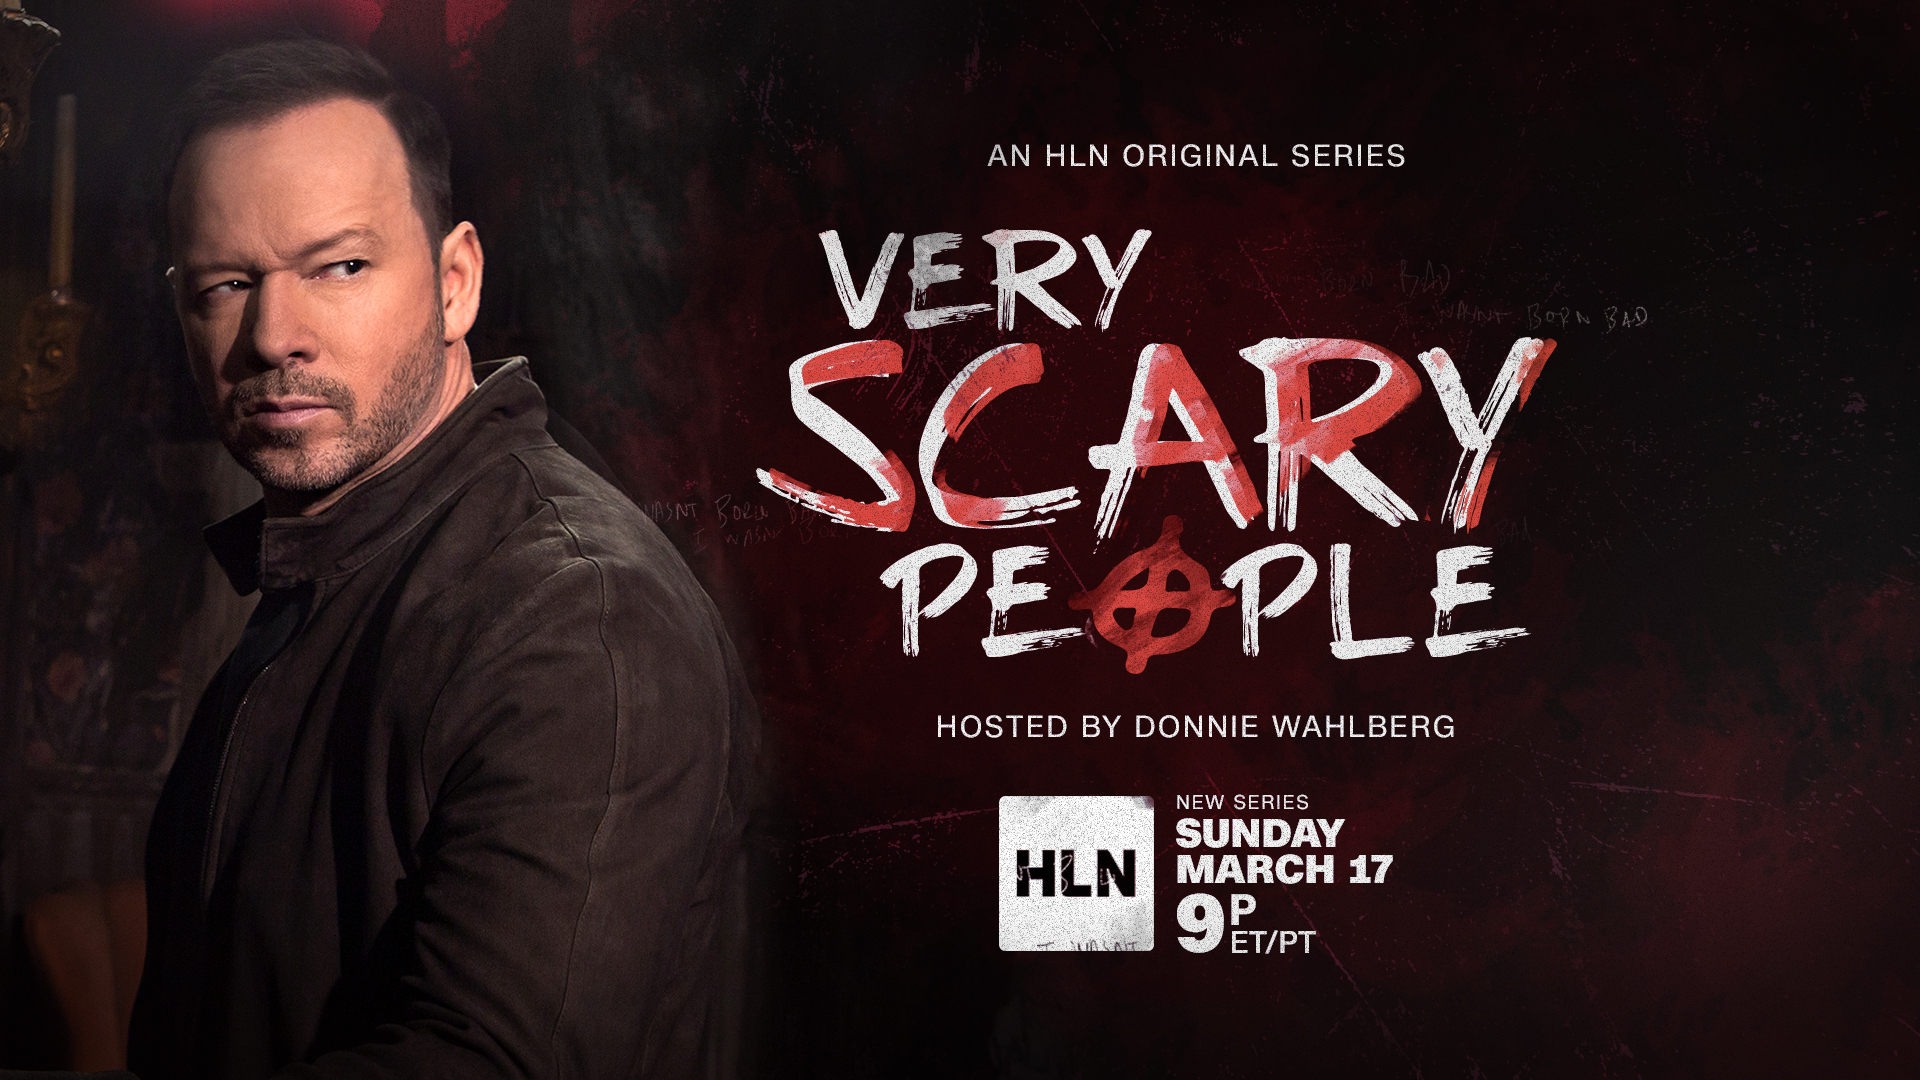 HLN to Premiere Very Scary People Hosted by Donnie Wahlberg on March